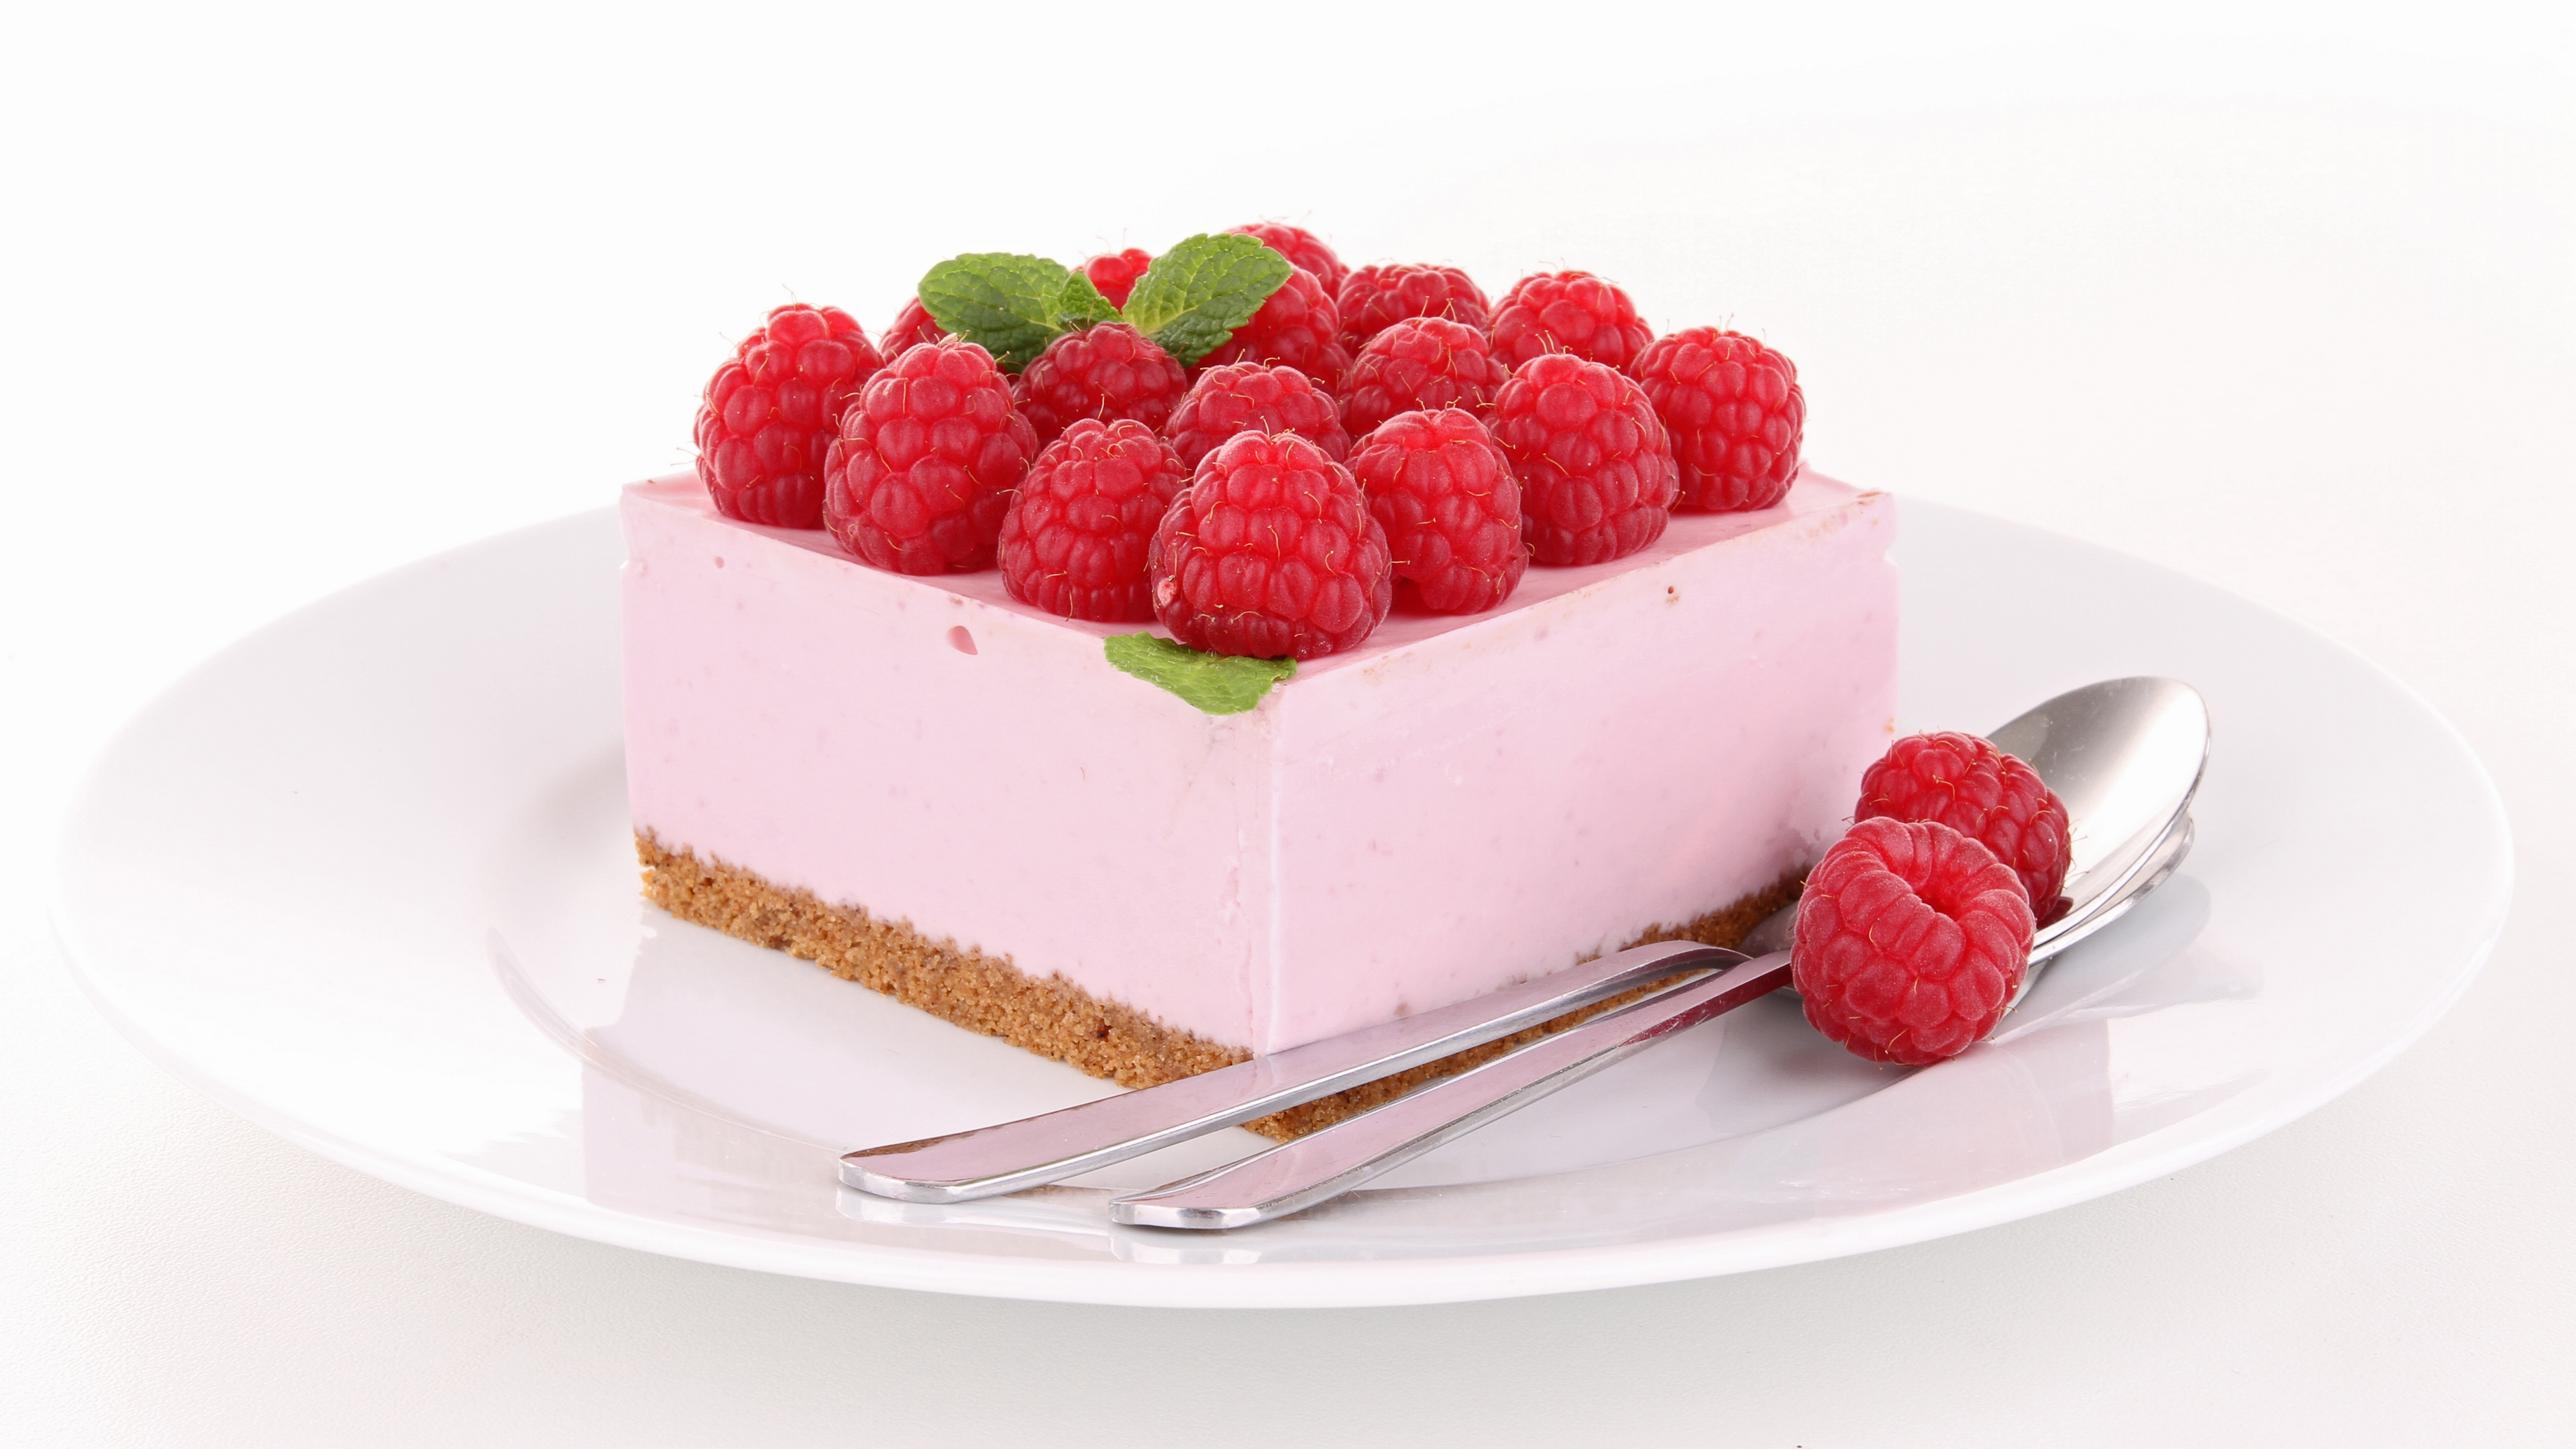 Strawberry Cake 1588 wallpaper